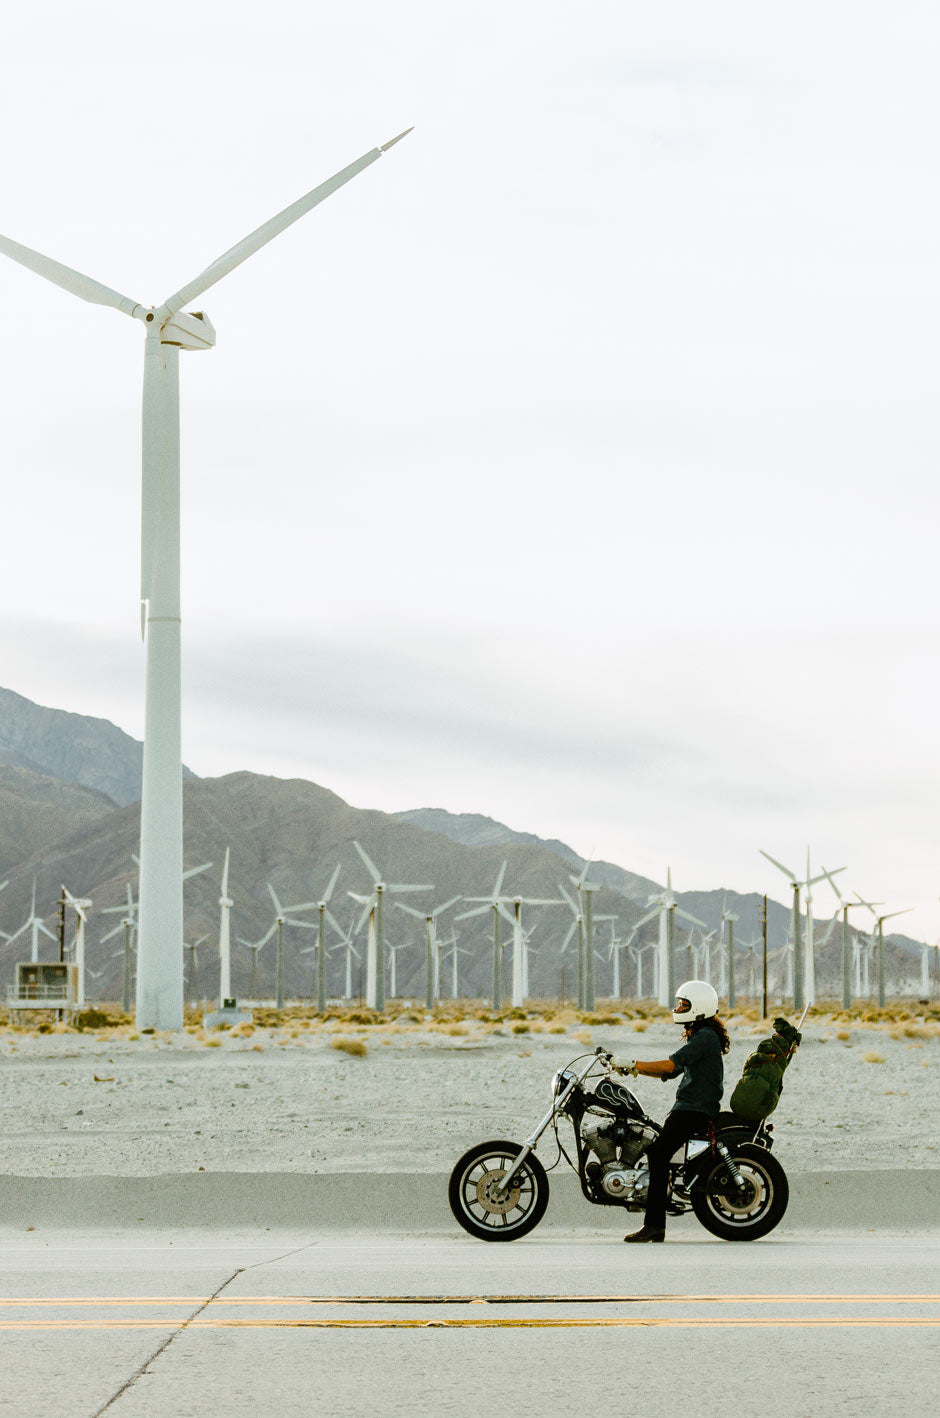 Paradise Roadshow 2020 - Motorbike with wind turbines in background